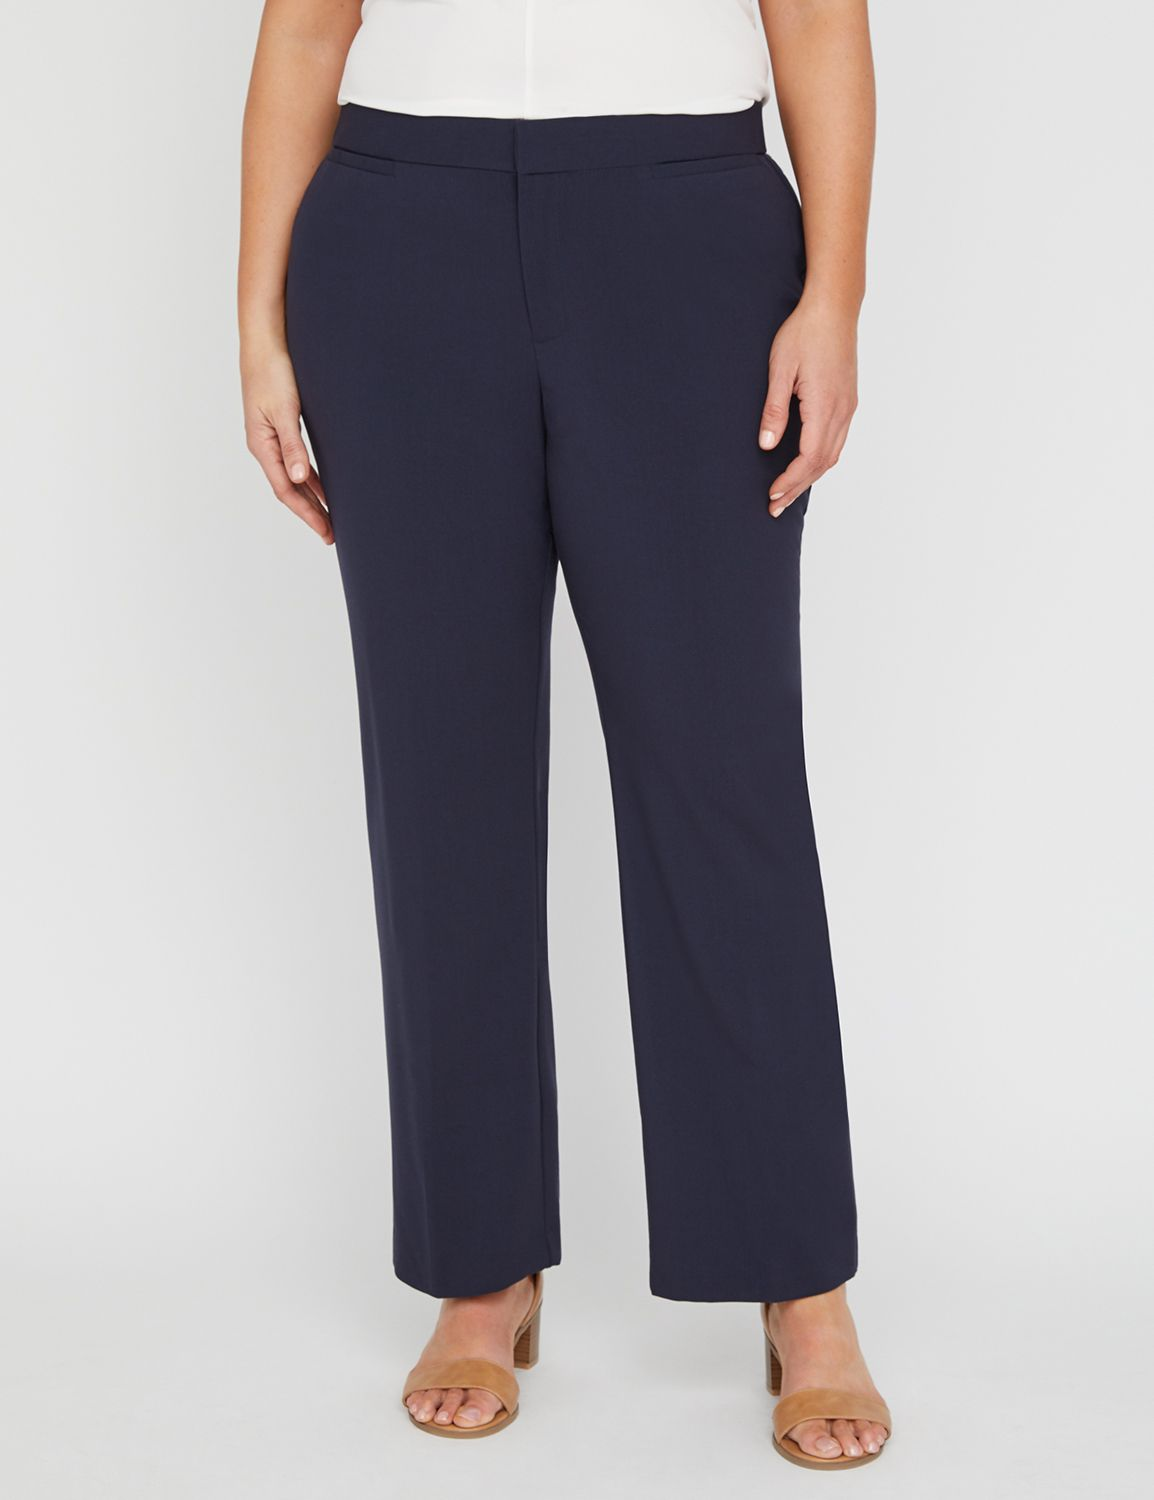 Right Fit Pant (Moderately Curvy) Right Fit Pant (Moderately Curvy) MP-300043681